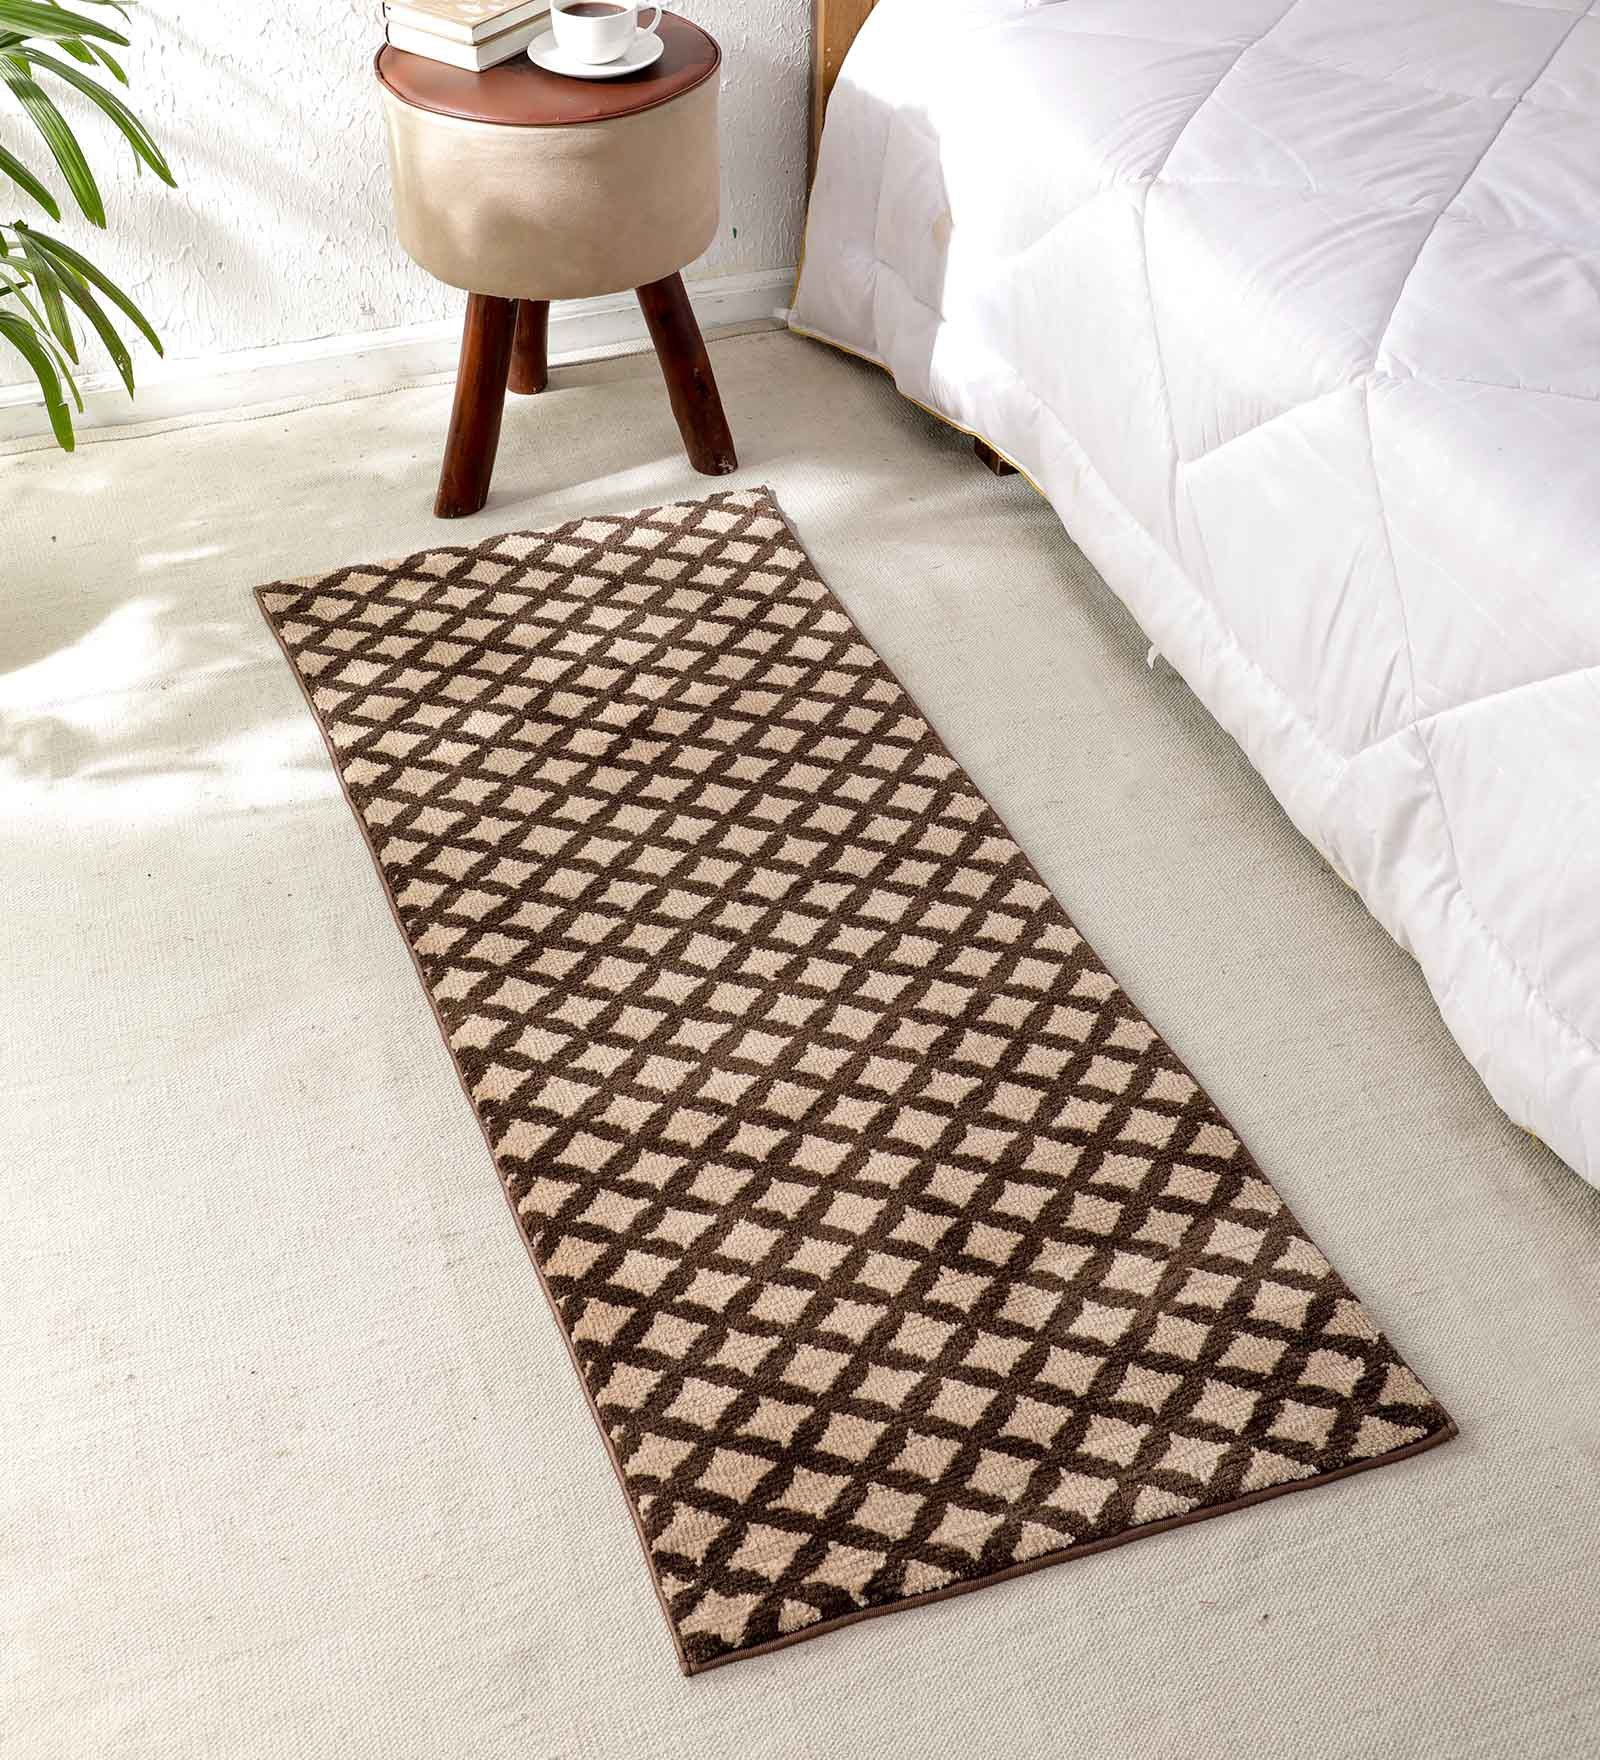 Flooring India Light Beige & Coffee Polyester Jewel Tiles 24x60 Inch Anti Skit Runner